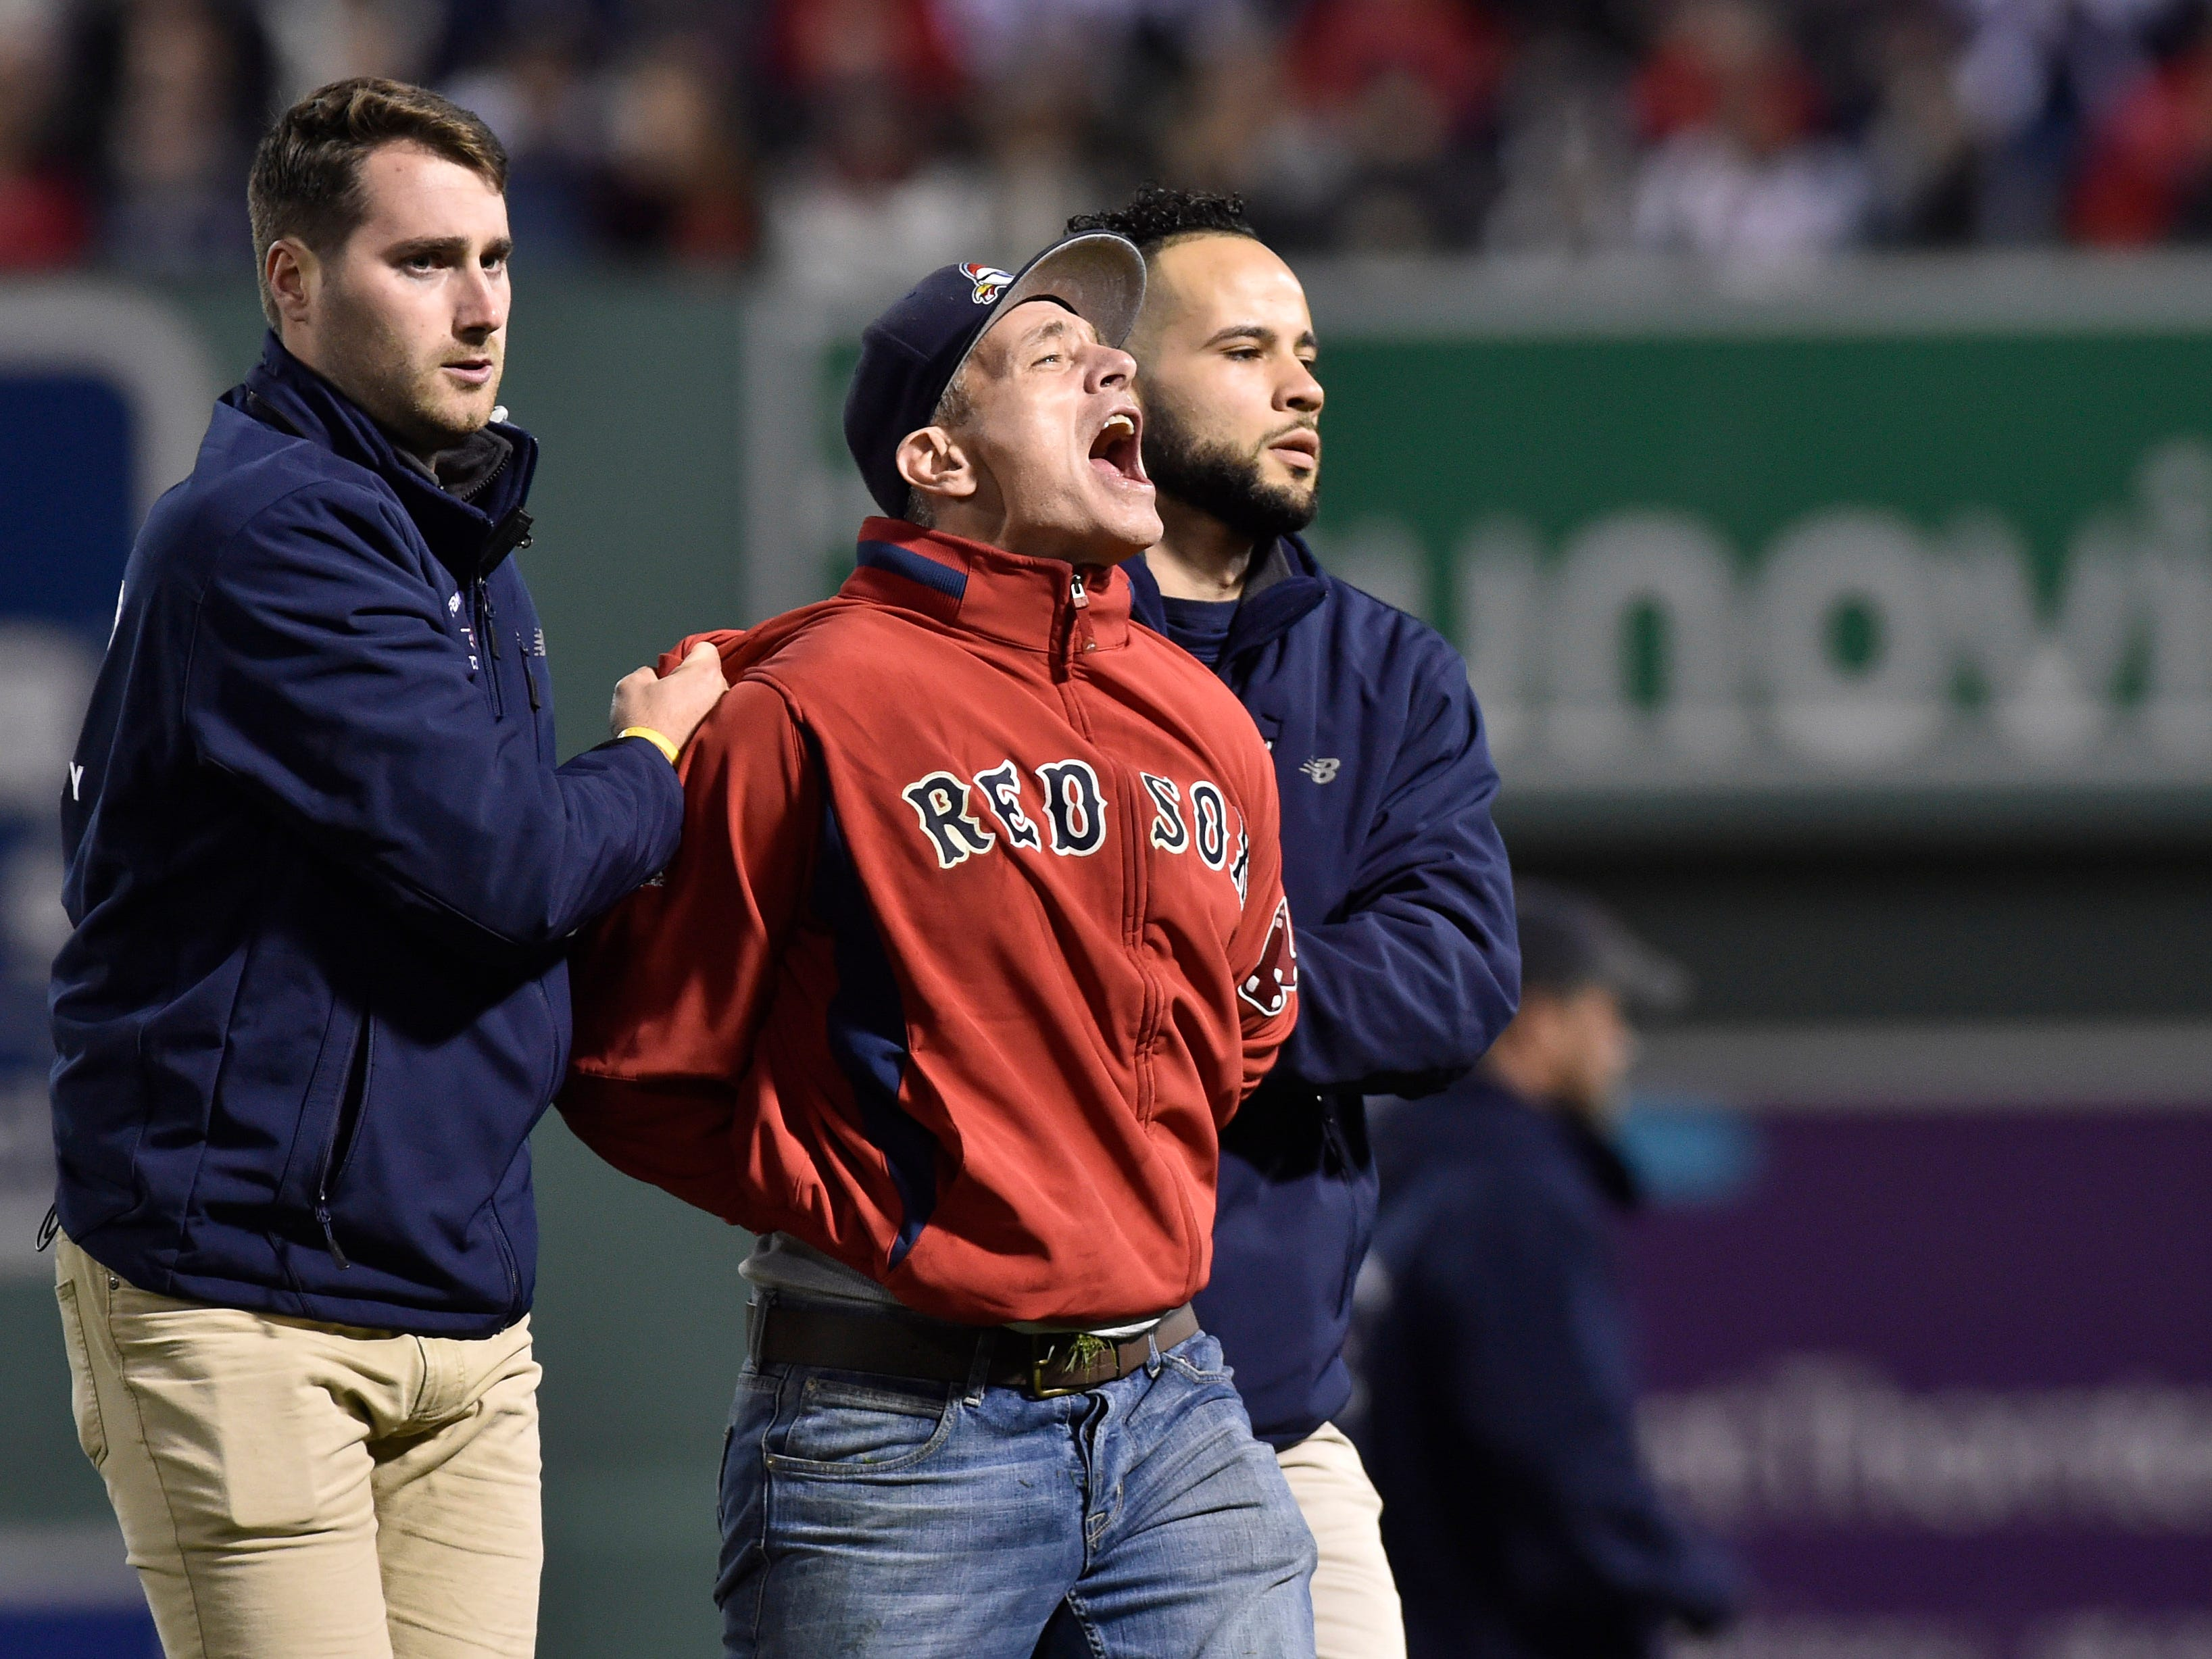 ALDS Game 1: A Red Sox fan is escorted after running on the field in the fifth inning.